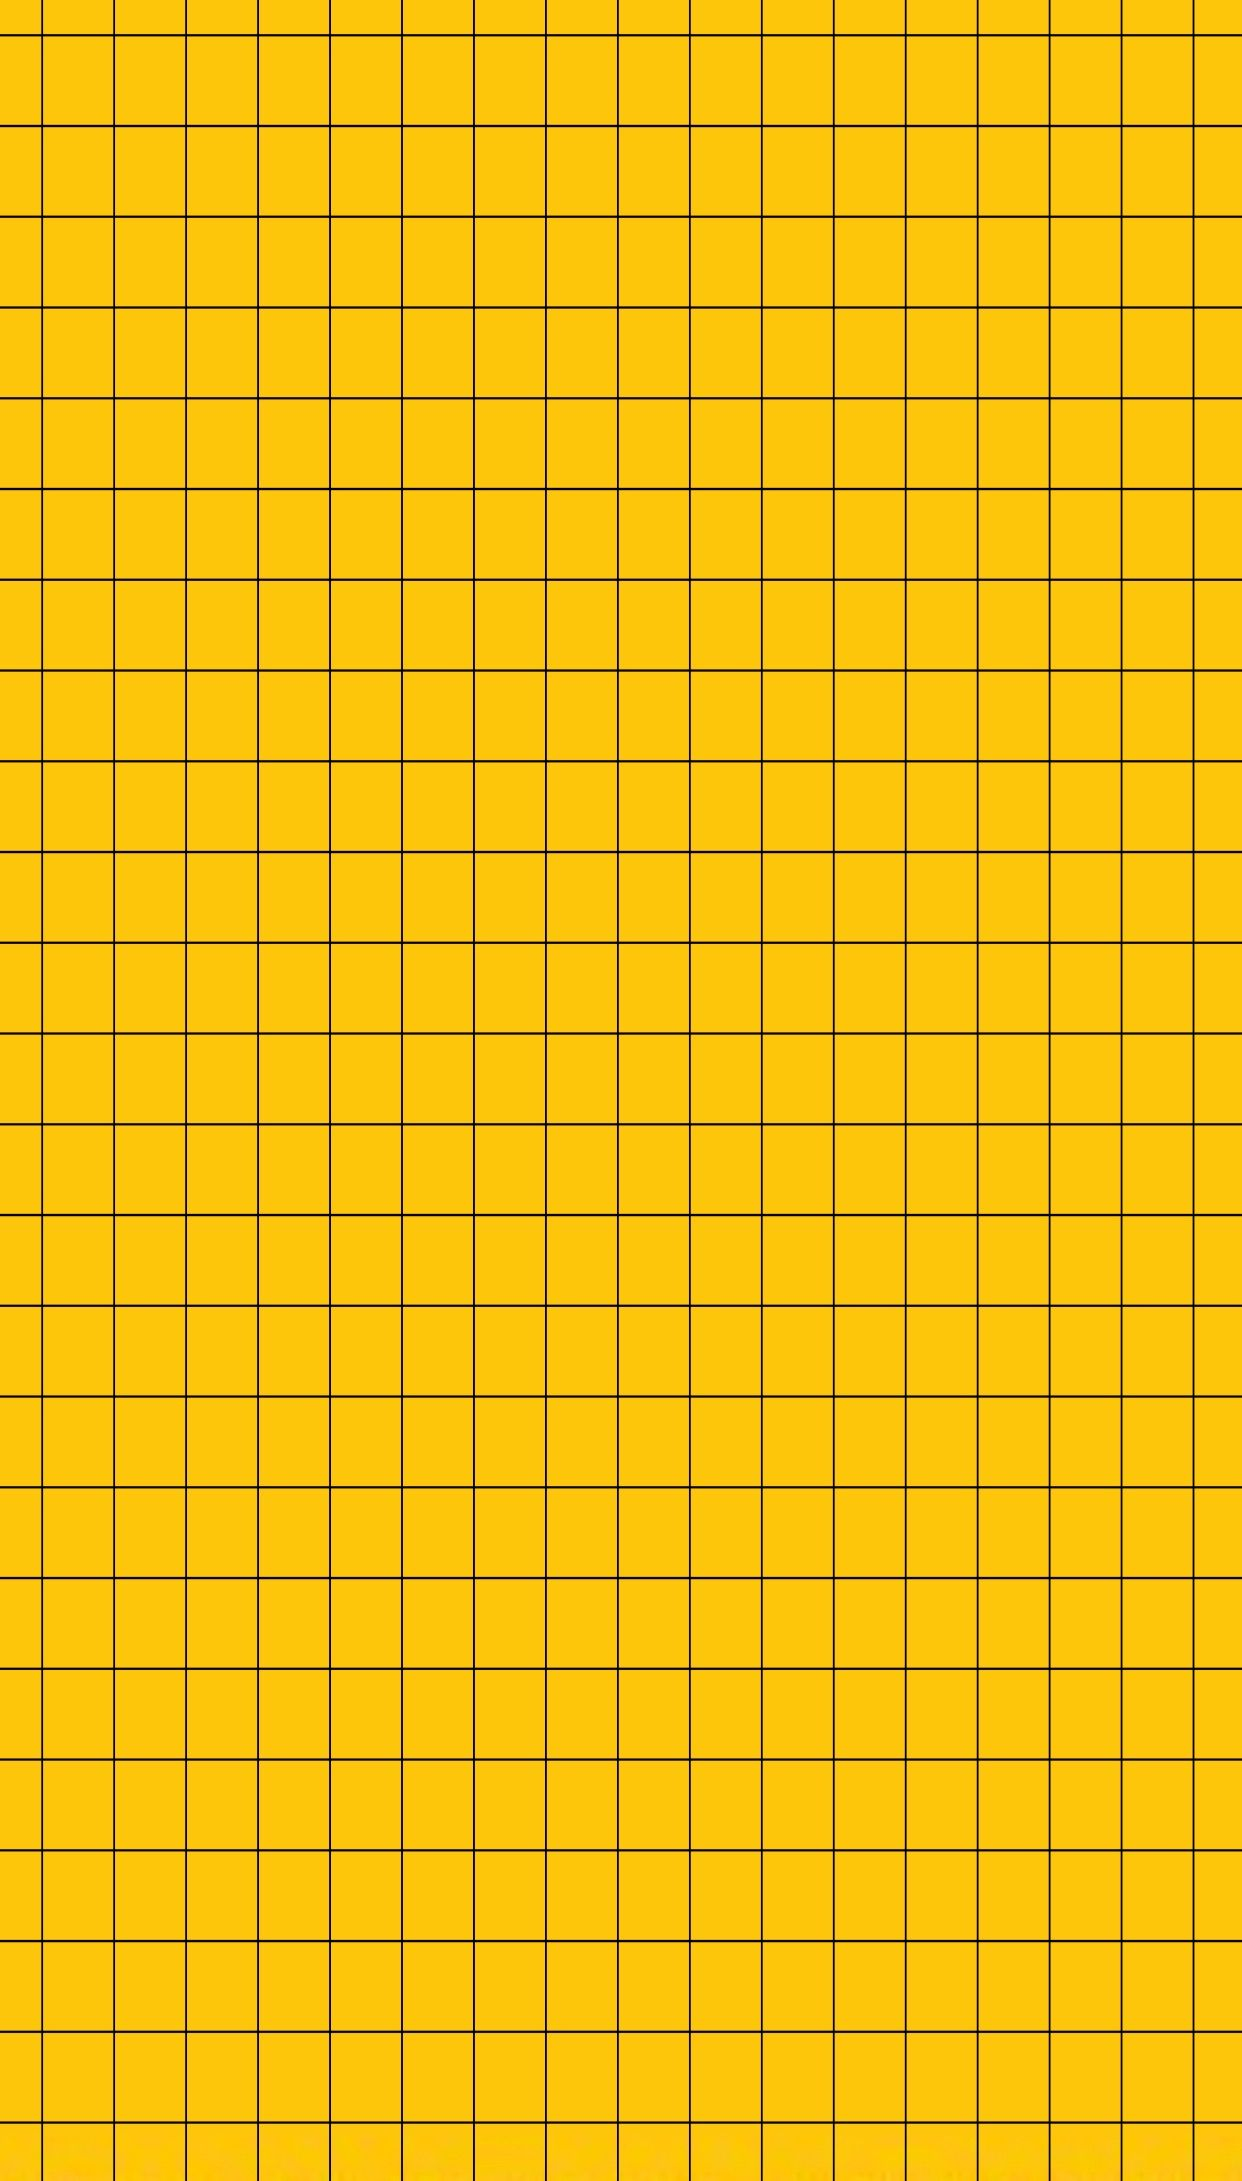 Basic Mustard Yellow And Black Grid Wallpaper Iphone